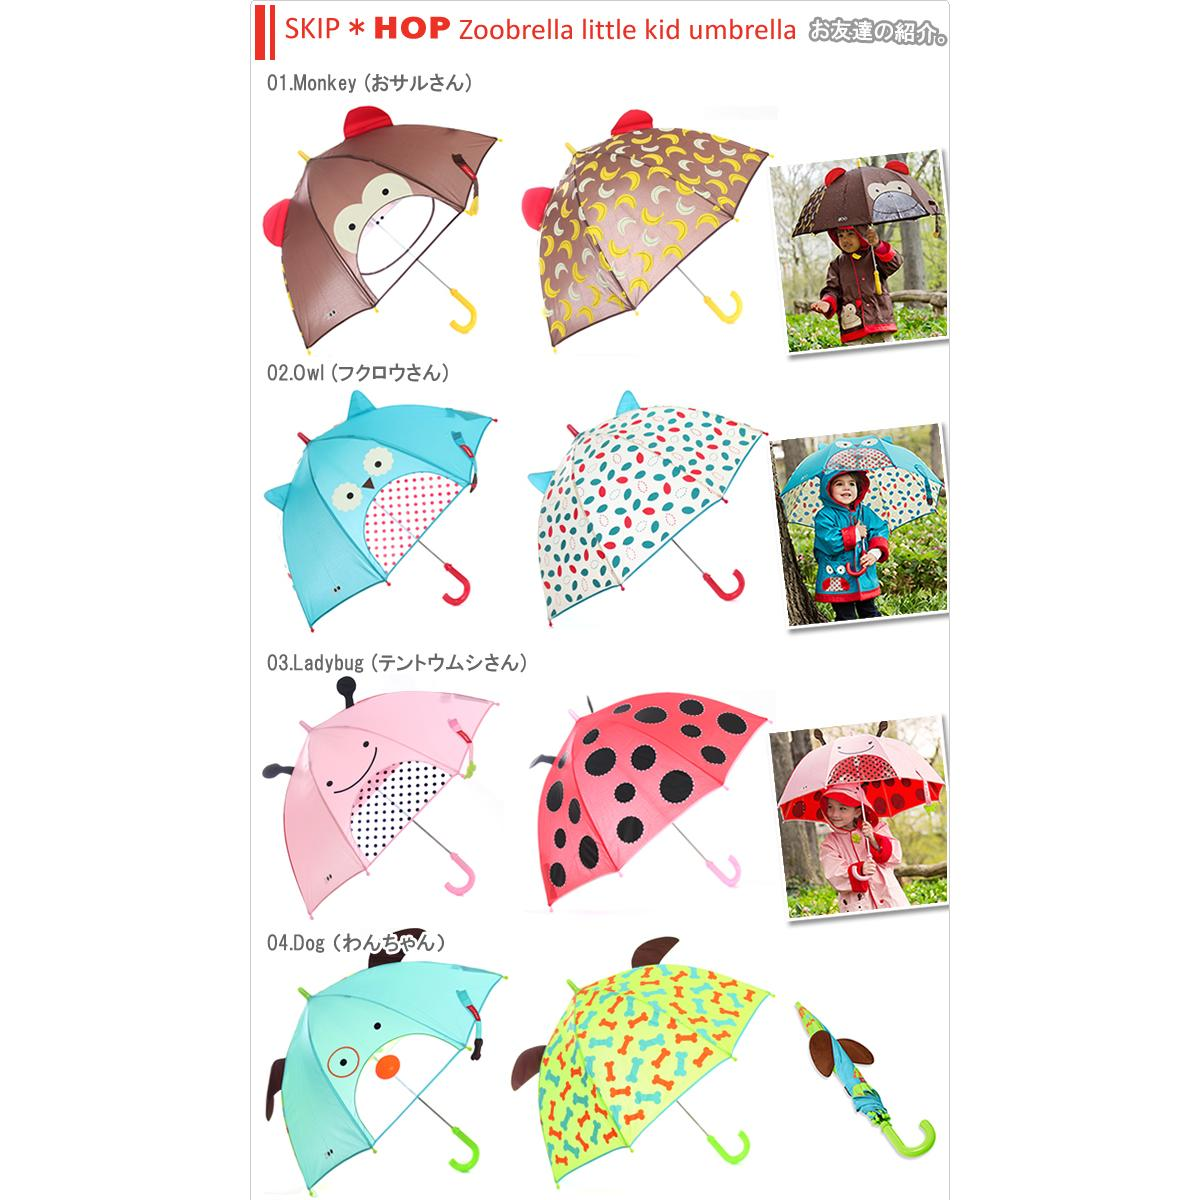 Skip Hop ZOOBRELLA Little Kid Umbrella 100%Authentic/Genuine.